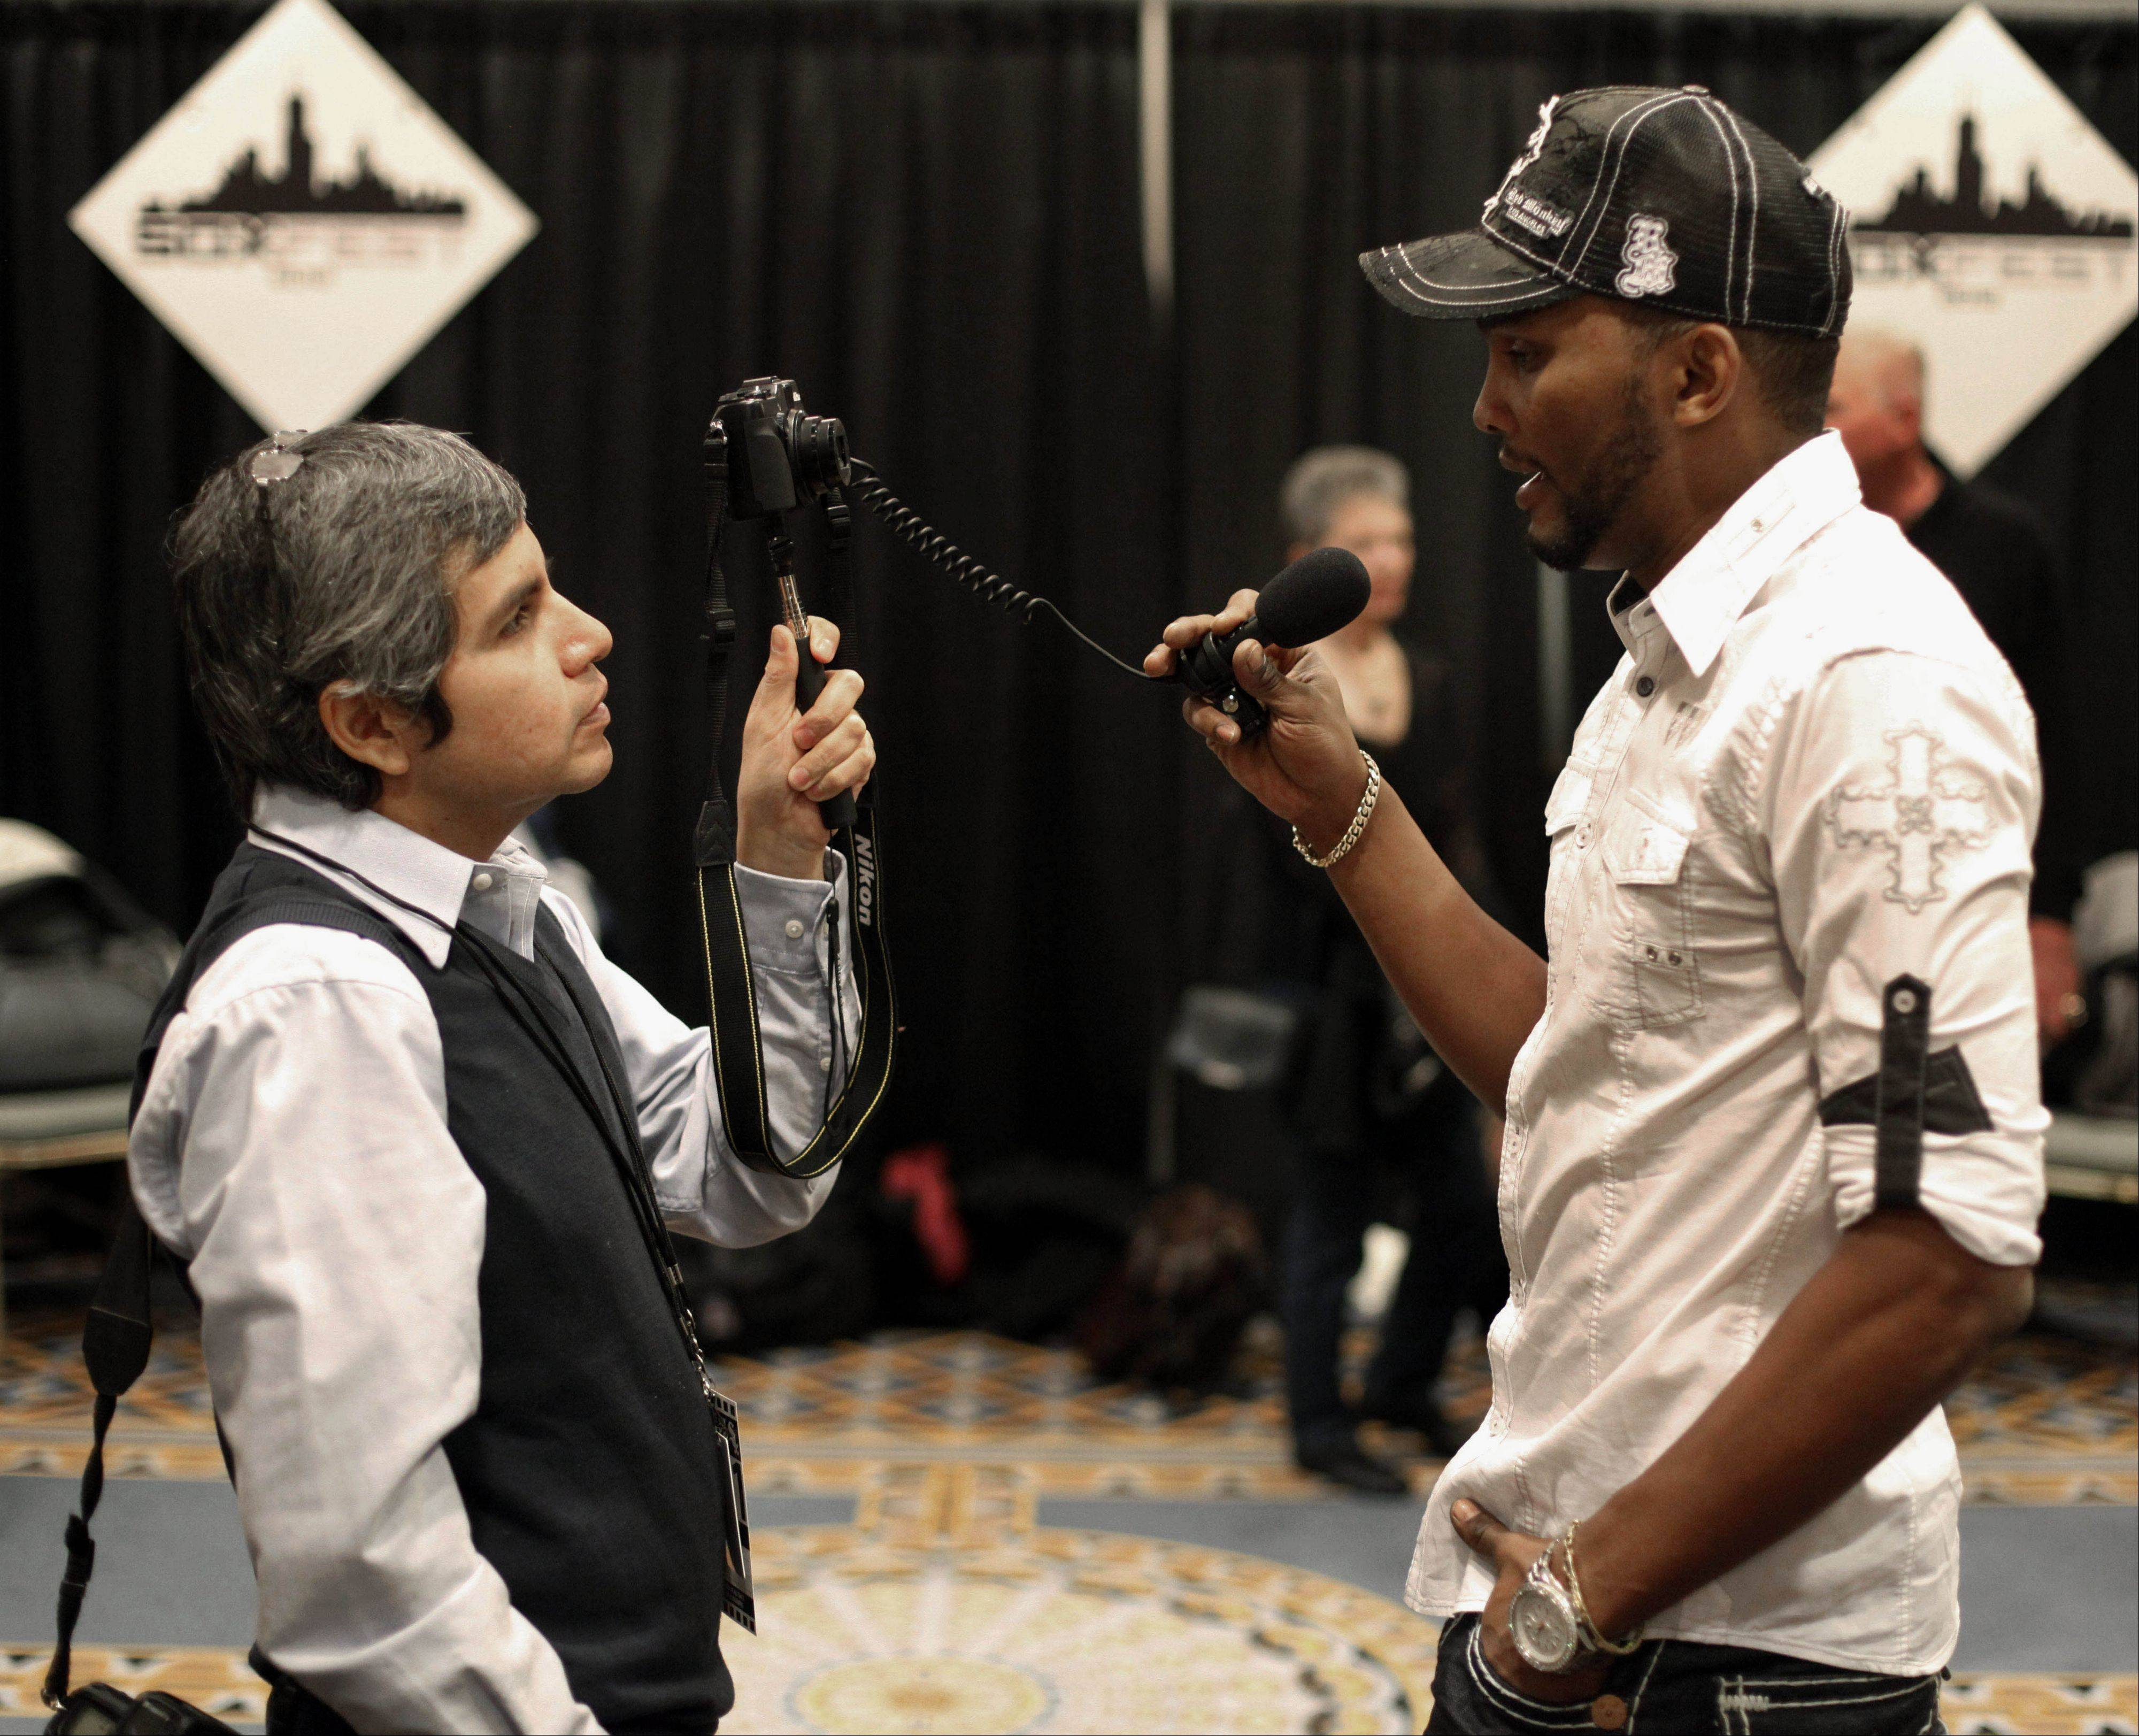 Chicago White Sox baseball shortstop Alexei Ramirez, right, holds a microphone during an interview at the White Sox Fan Fest.